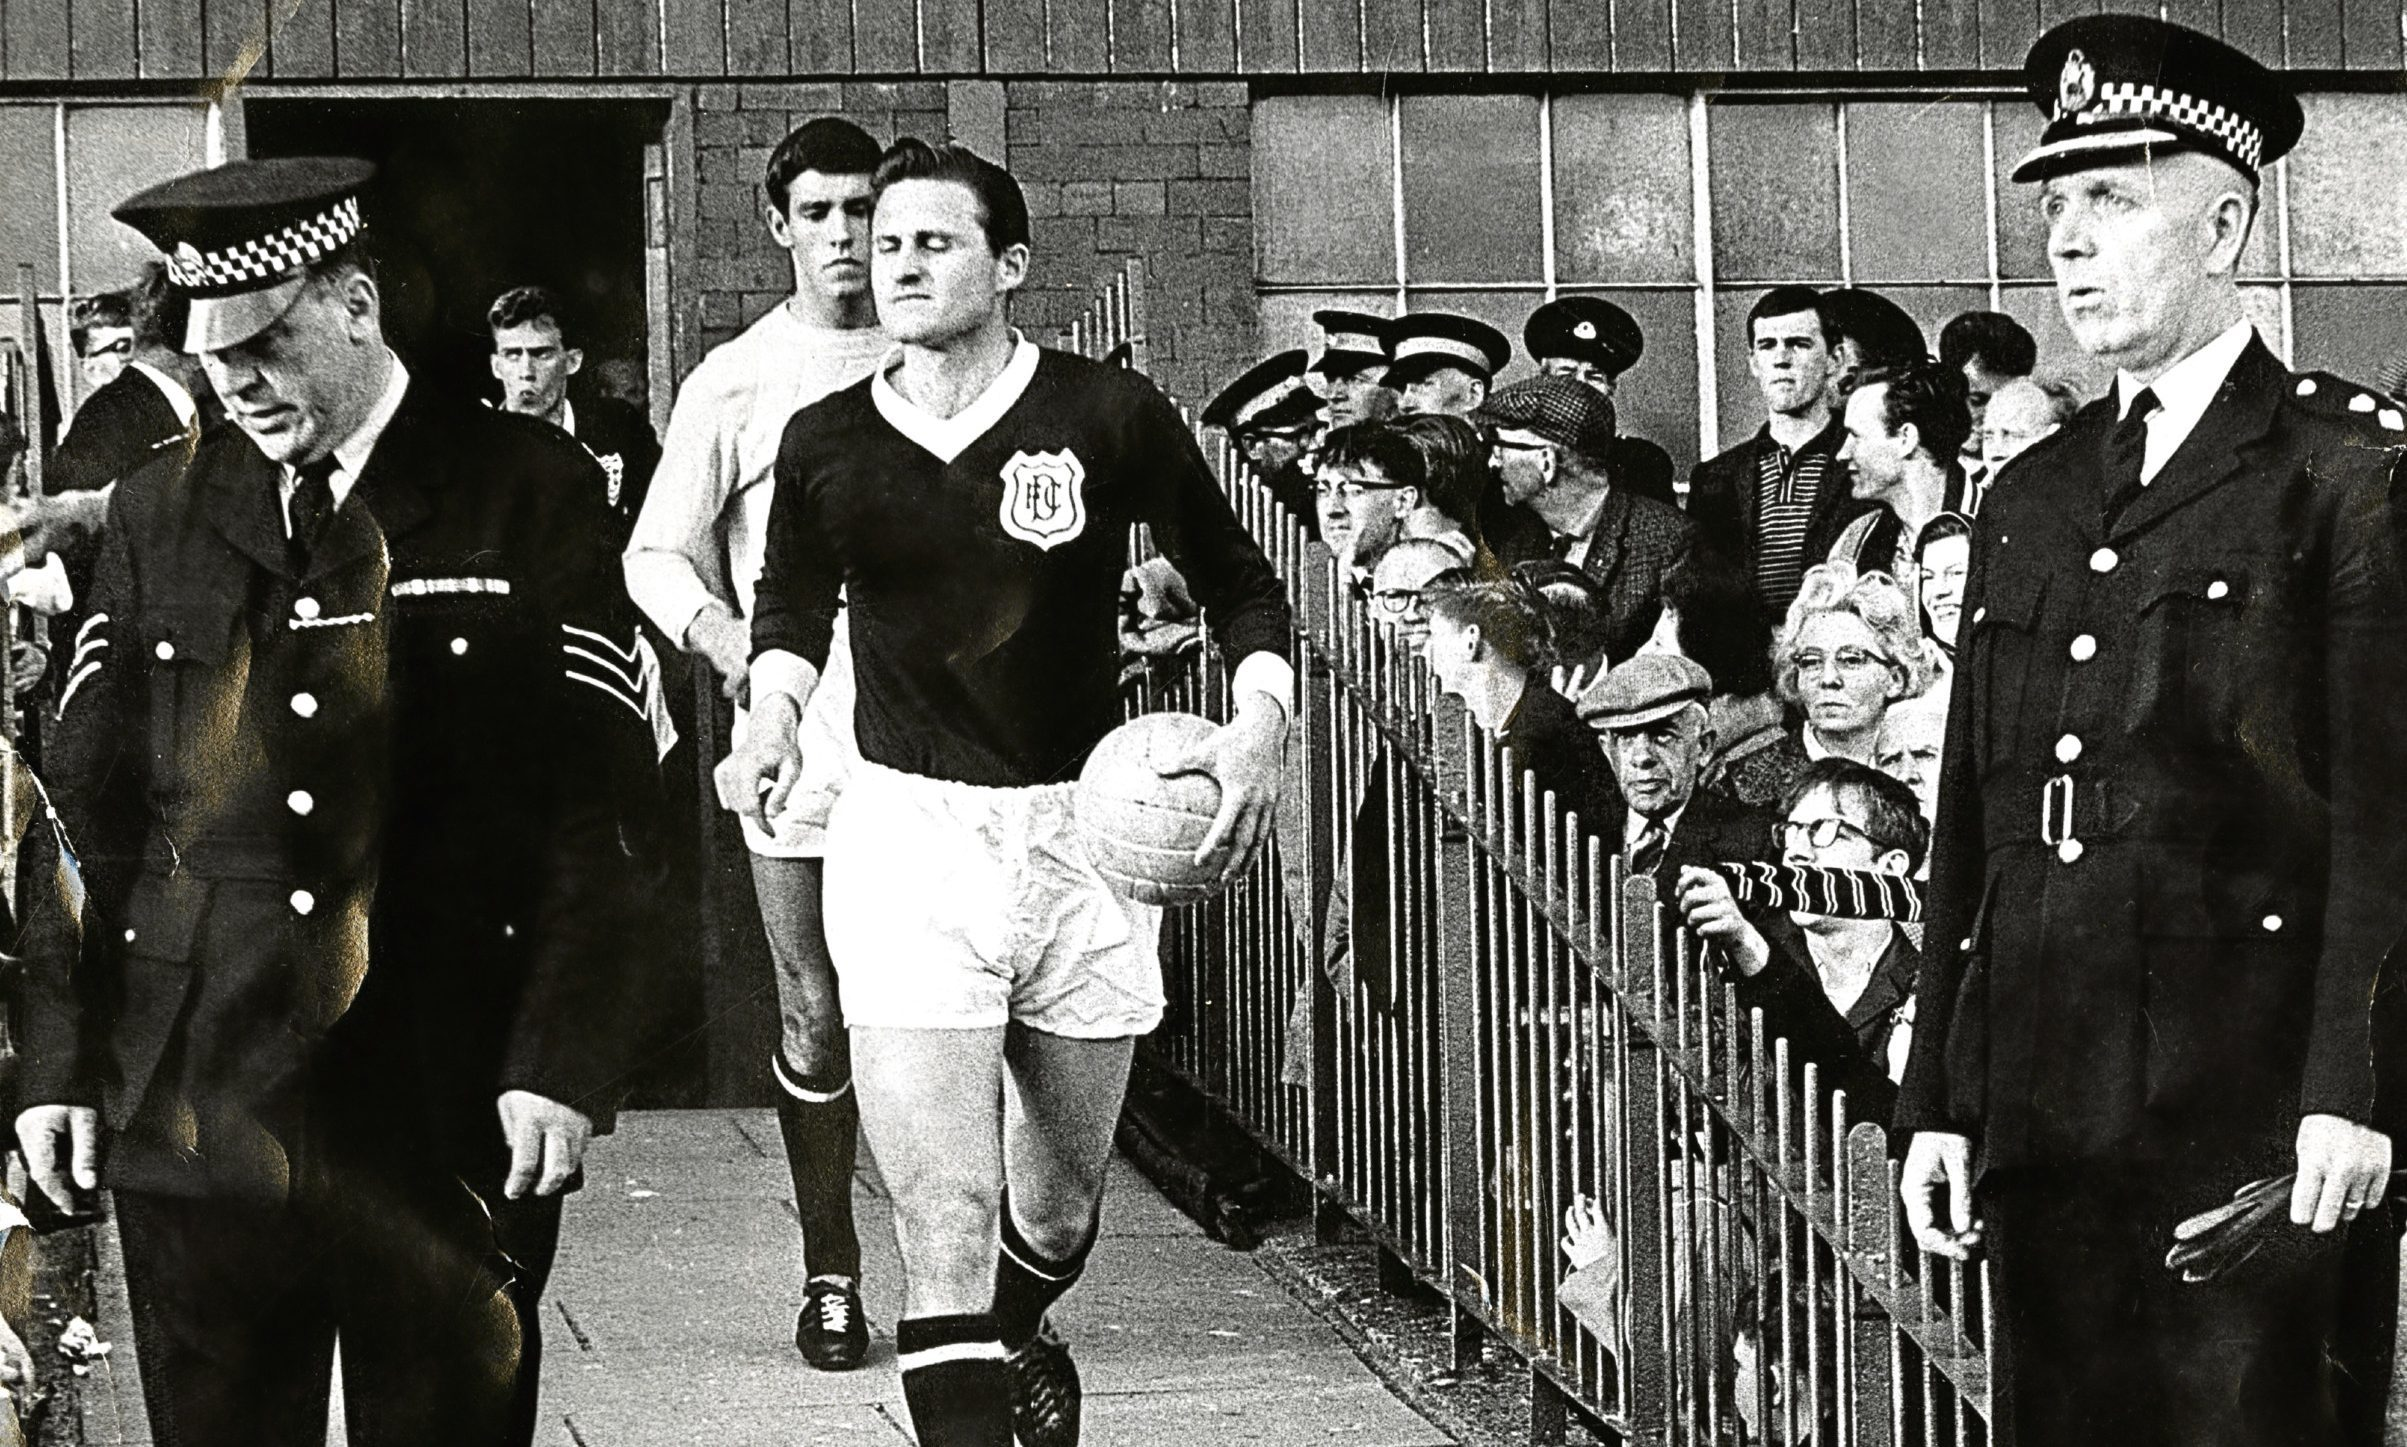 It's August 1965 and a rare foray as captain of Dundee, as Alan Cousin leads the team out at Dens Park, followed by goalkeeper Ally Donaldson. Good security on hand, too, from the local constabulary.